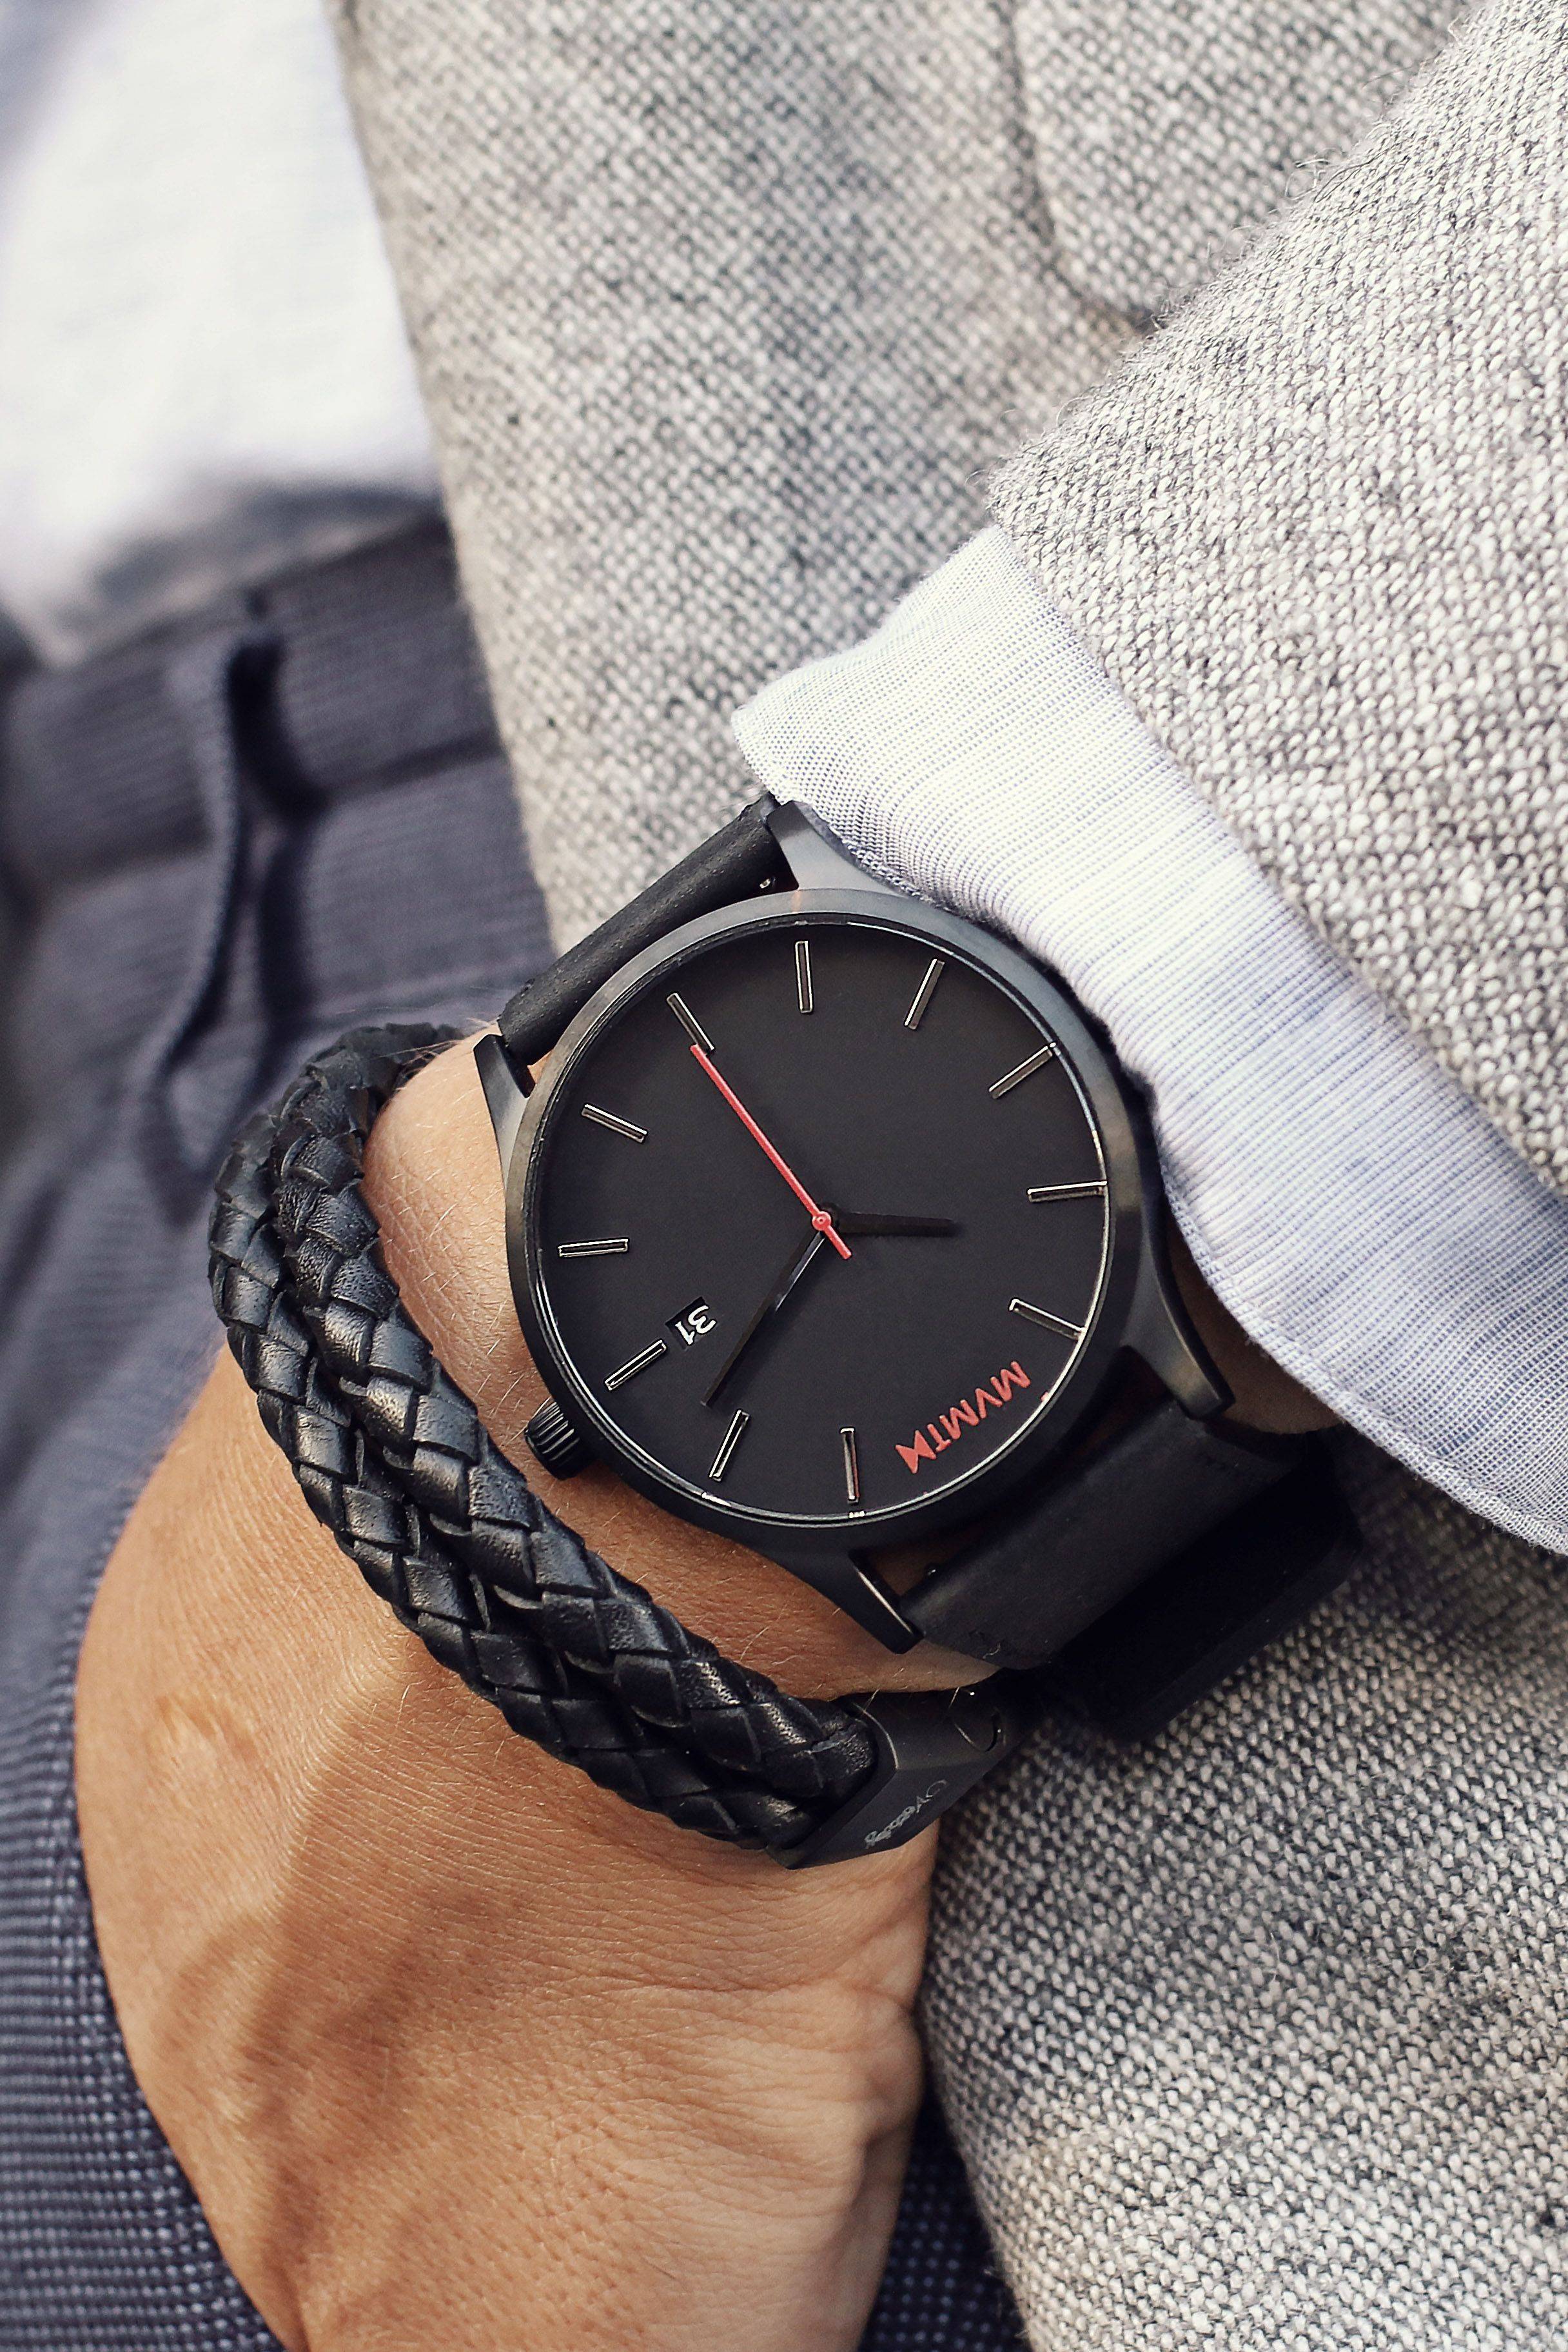 MVMT watches, business success story | Watches for men, Fashion watches,  Mens accessories